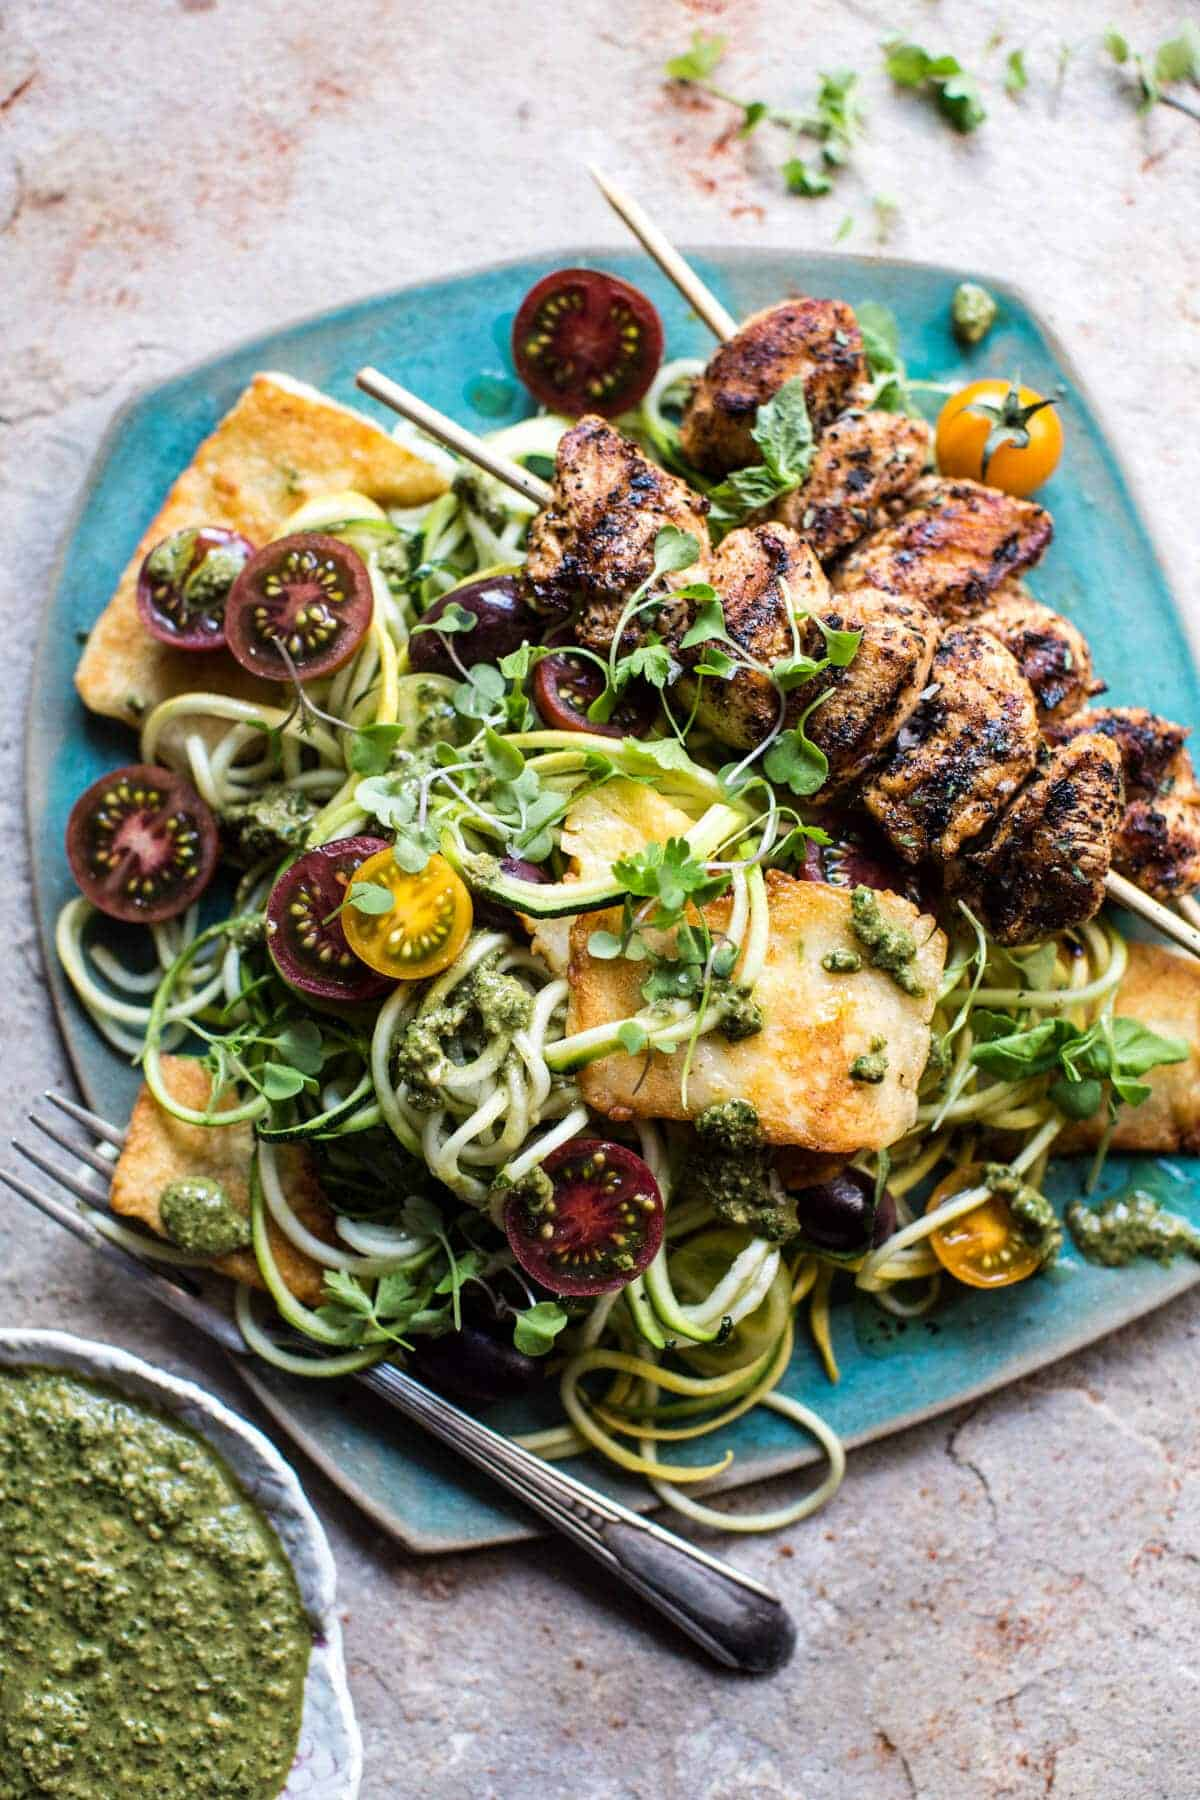 Mediterranean Chicken and Summer Squash Noodles with Fried Halloumi.